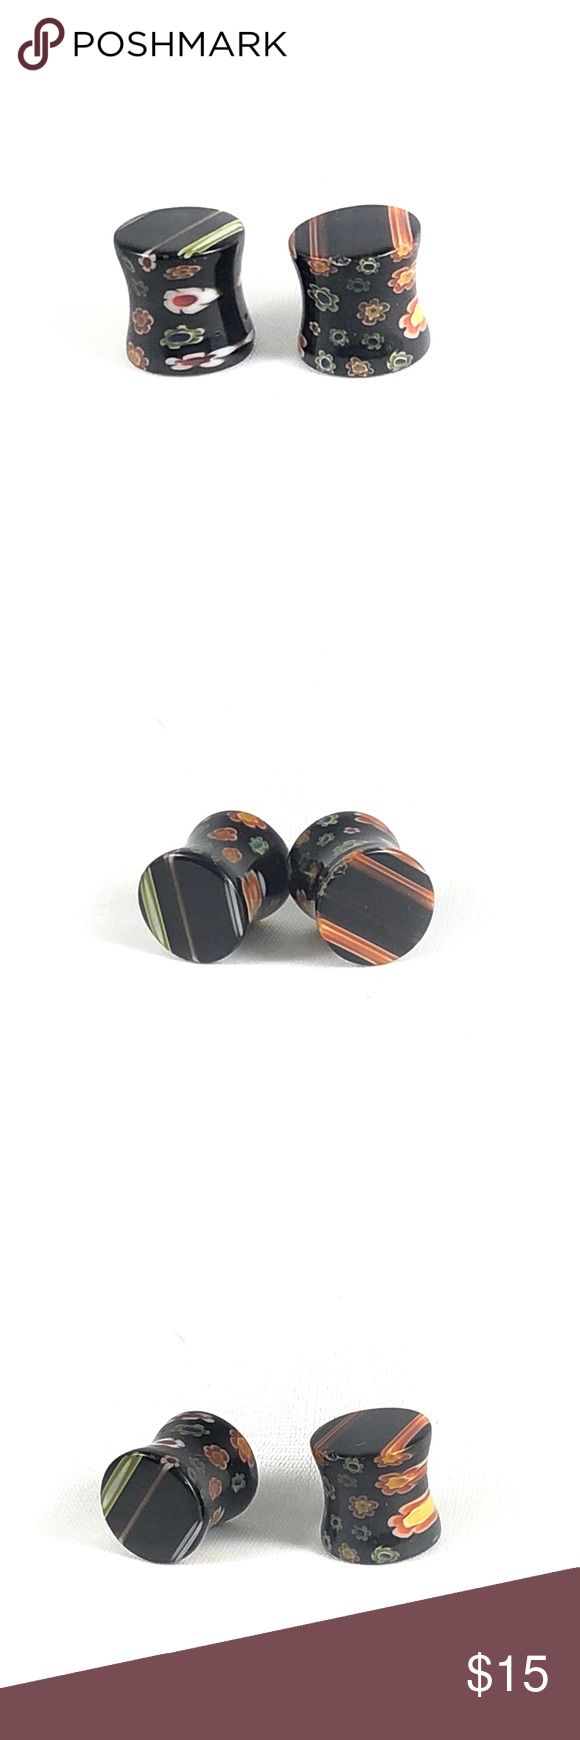 """Double Flare Black Stripe Acrylic Ear Gauges/Plugs New! Hand made acrylic ear gauges/Plugs. Blown in flower detail on the inside, flares are black & multicolor striped. Available in 1/2"""" & 00g.  ALL BODY JEWELRY IS BUY ONE GET ONE FREE! SEE MY OTHER LISTINGS! Space City Jewels Jewelry Earrings"""